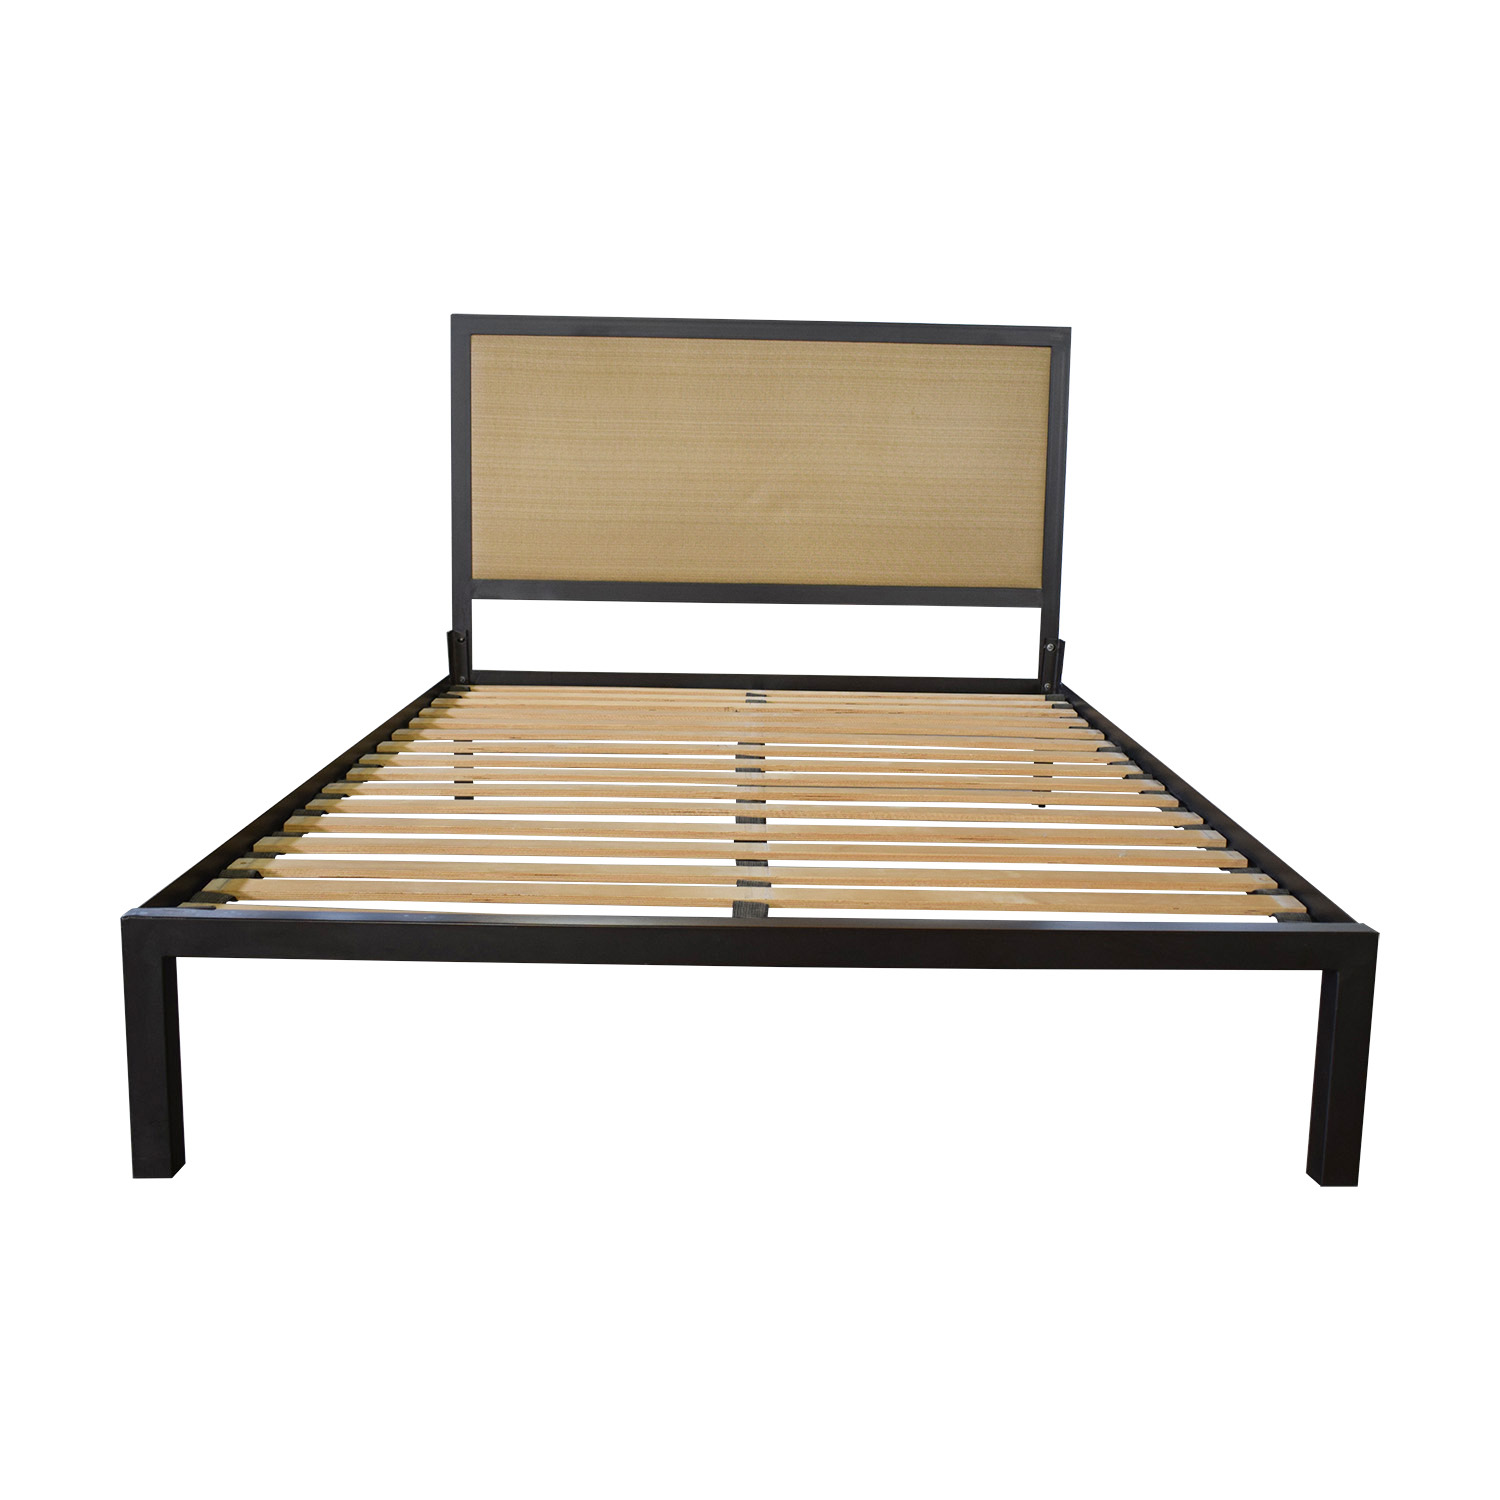 buy Crate & Barrel Crate & Barrel Steel Queen Bed Frame online